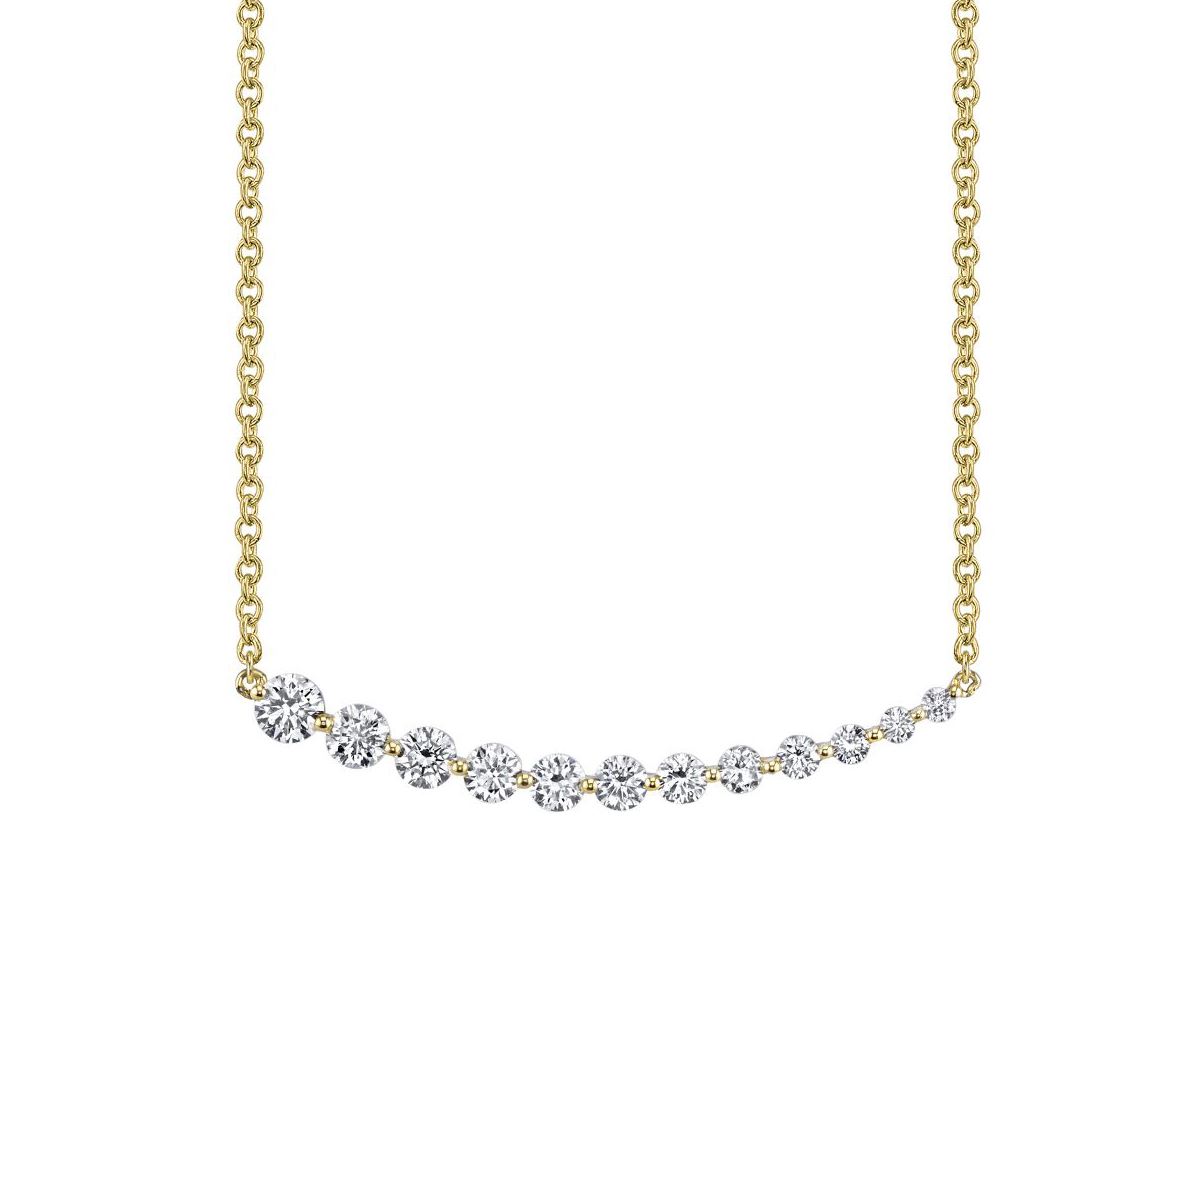 Anita Ko 18k Gold Graduating Diamond Necklace